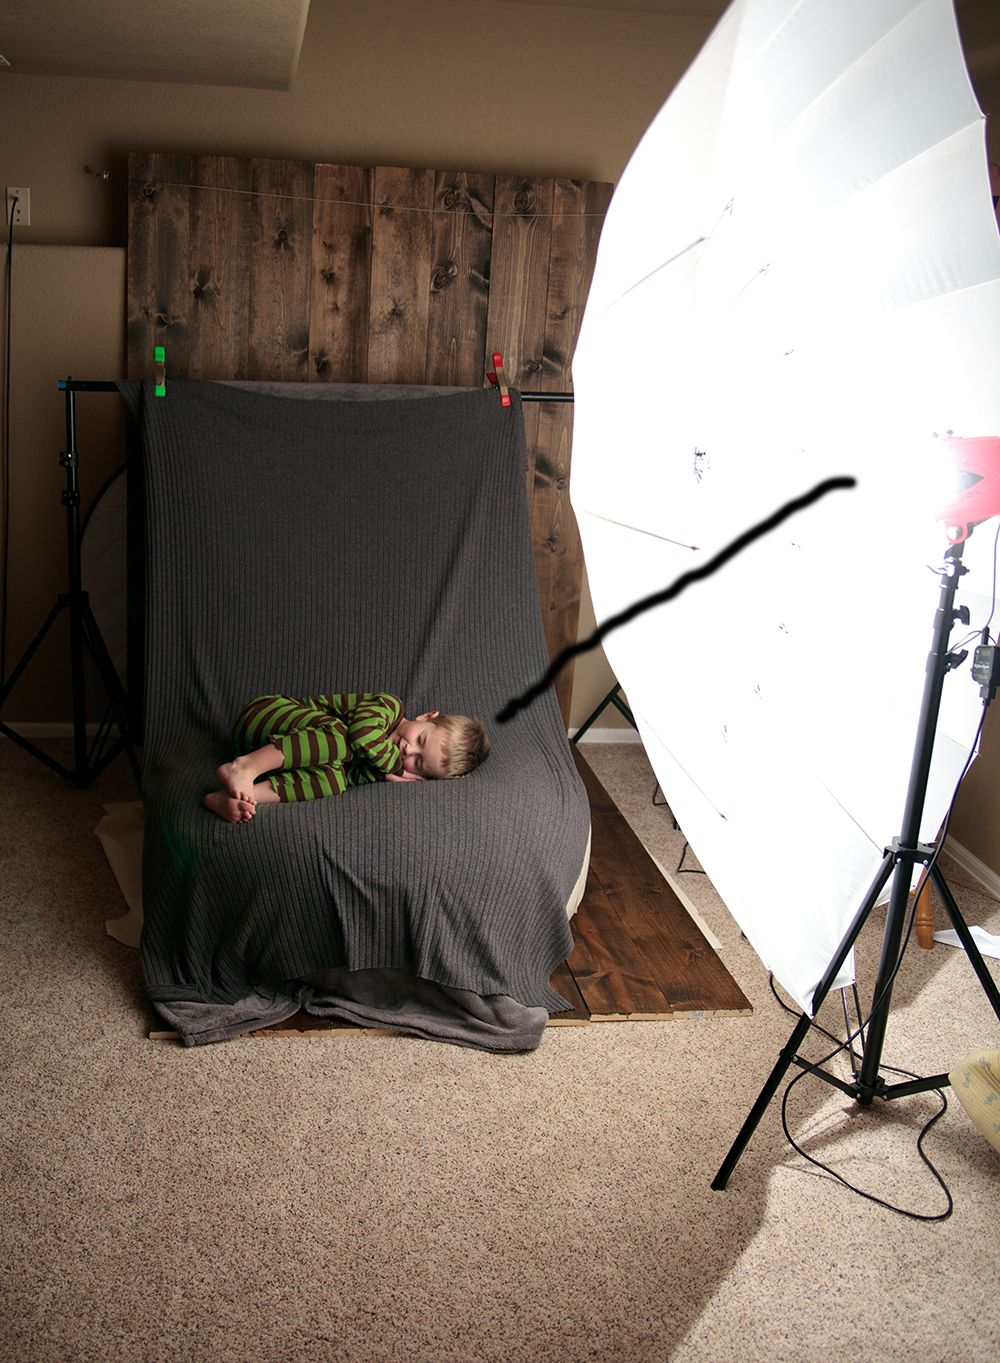 I have been using studio lighting for about 18 months now prior to